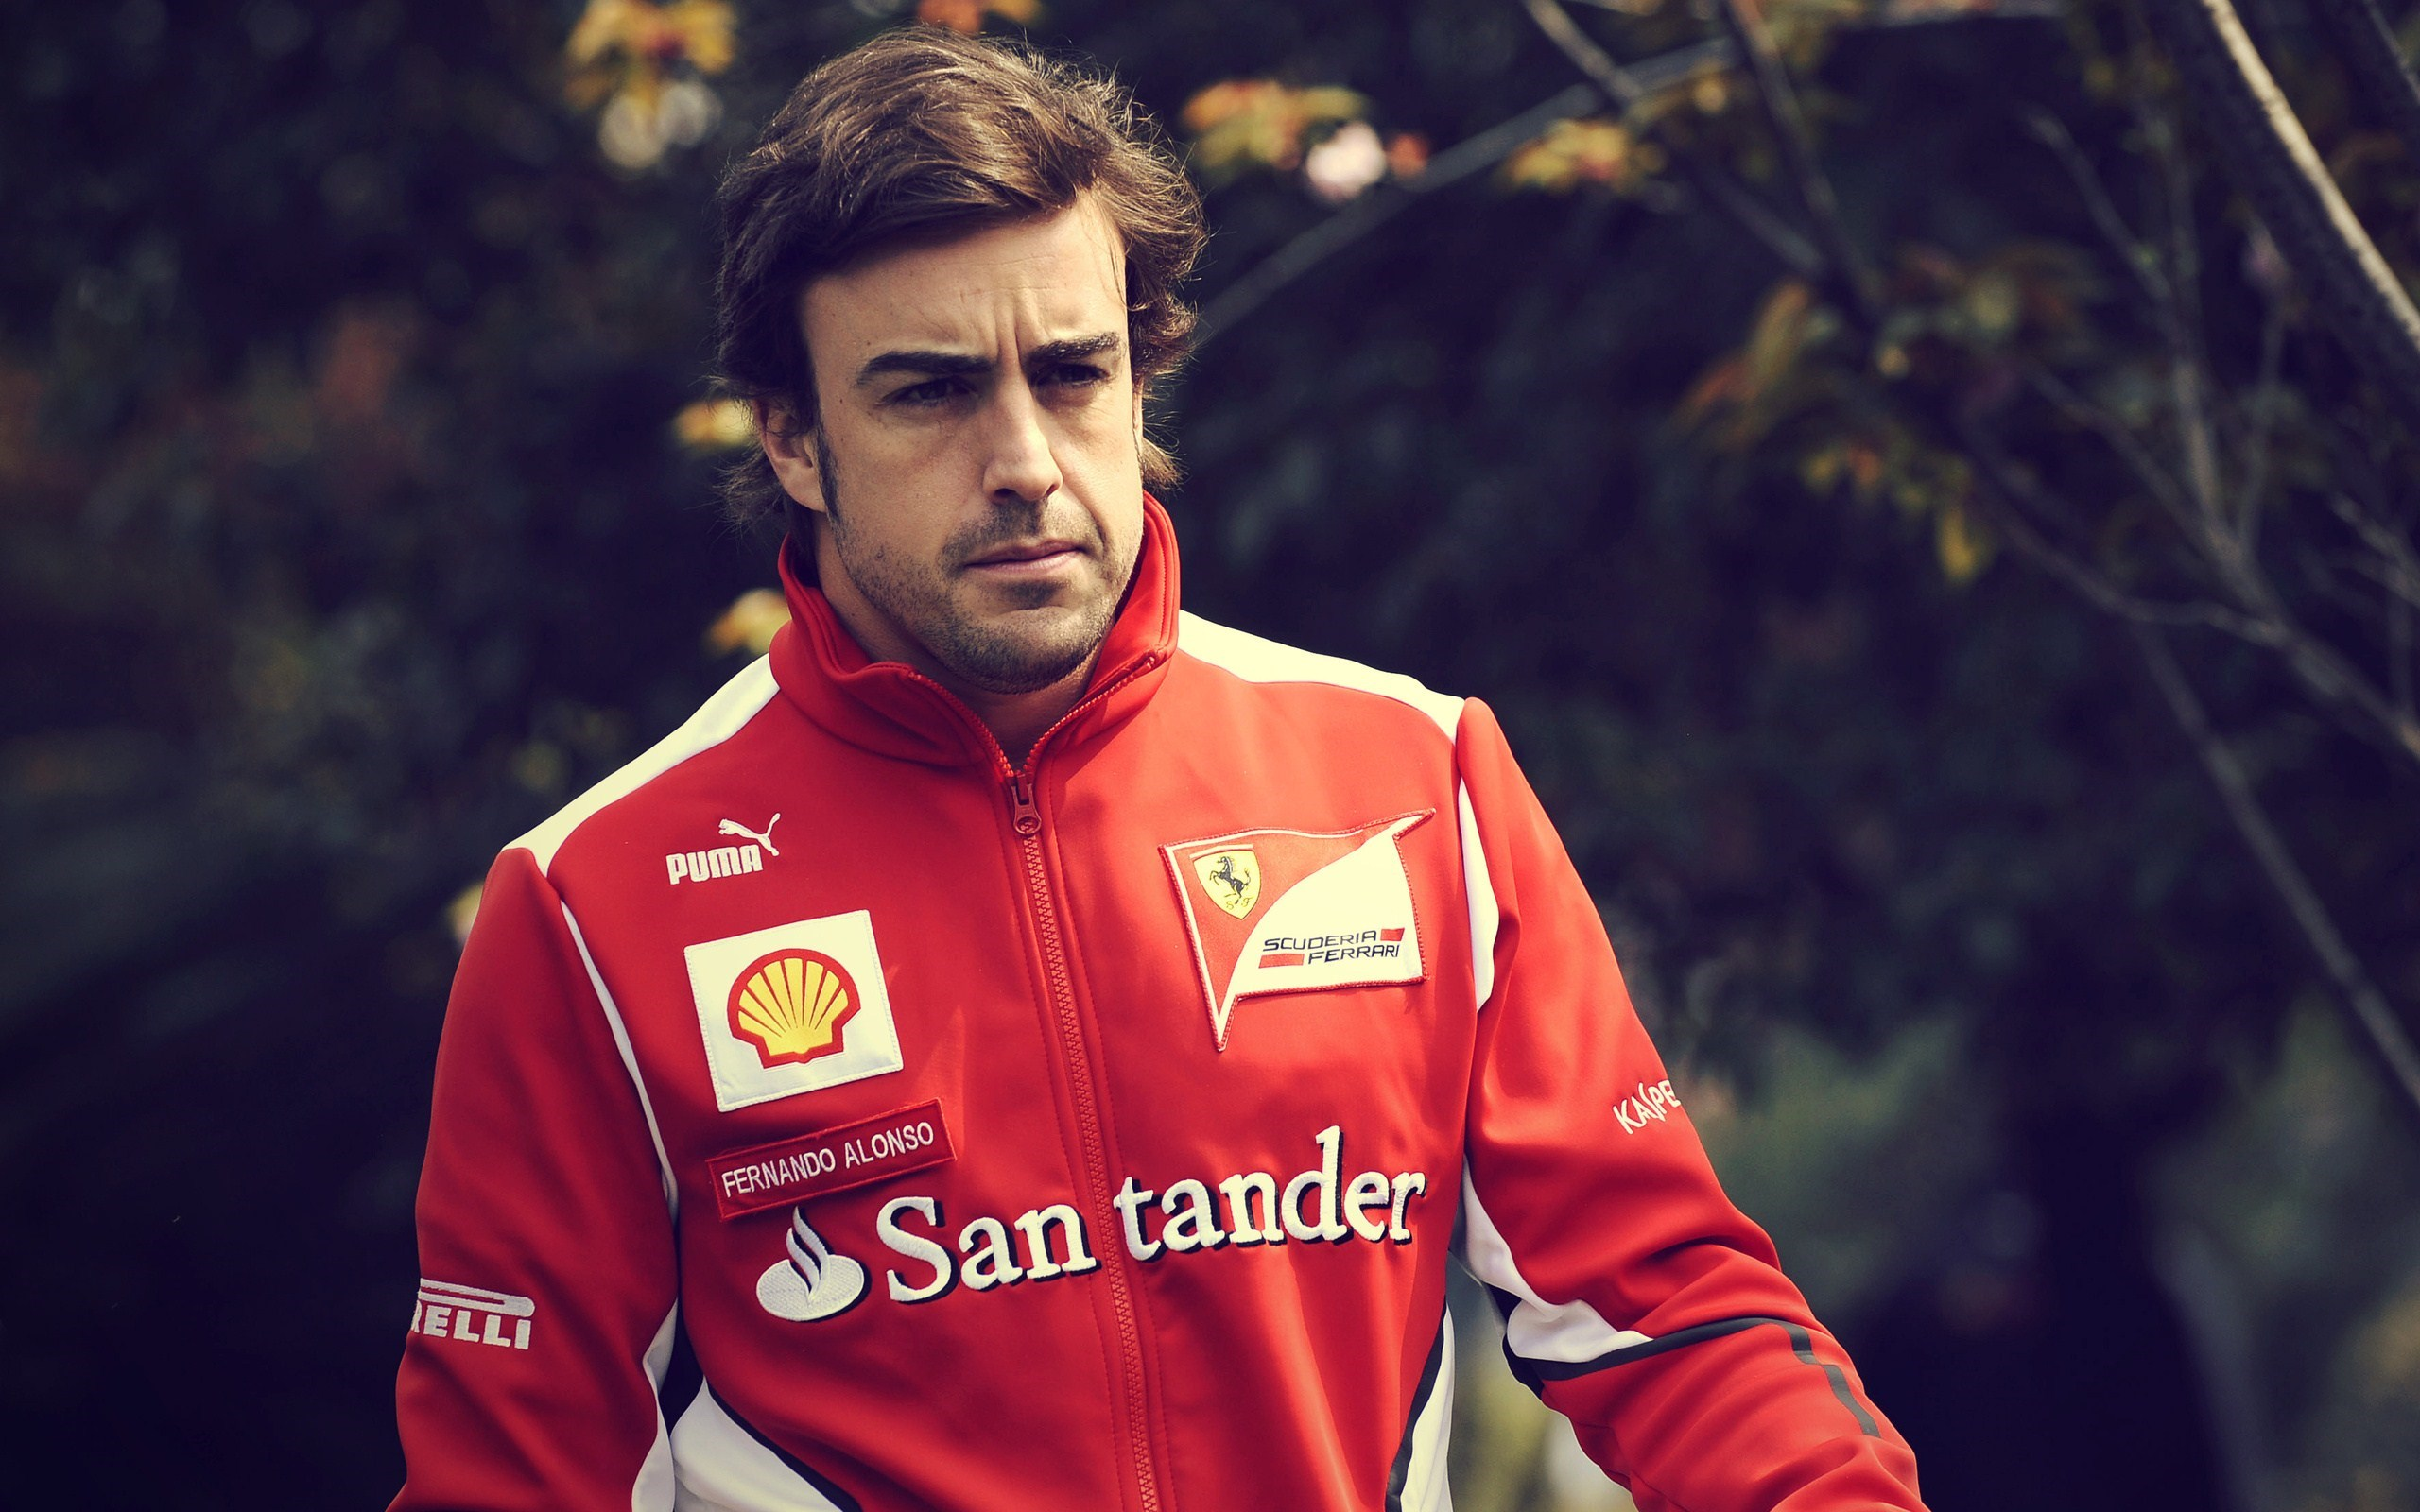 fernando alonso wallpapers and - photo #34